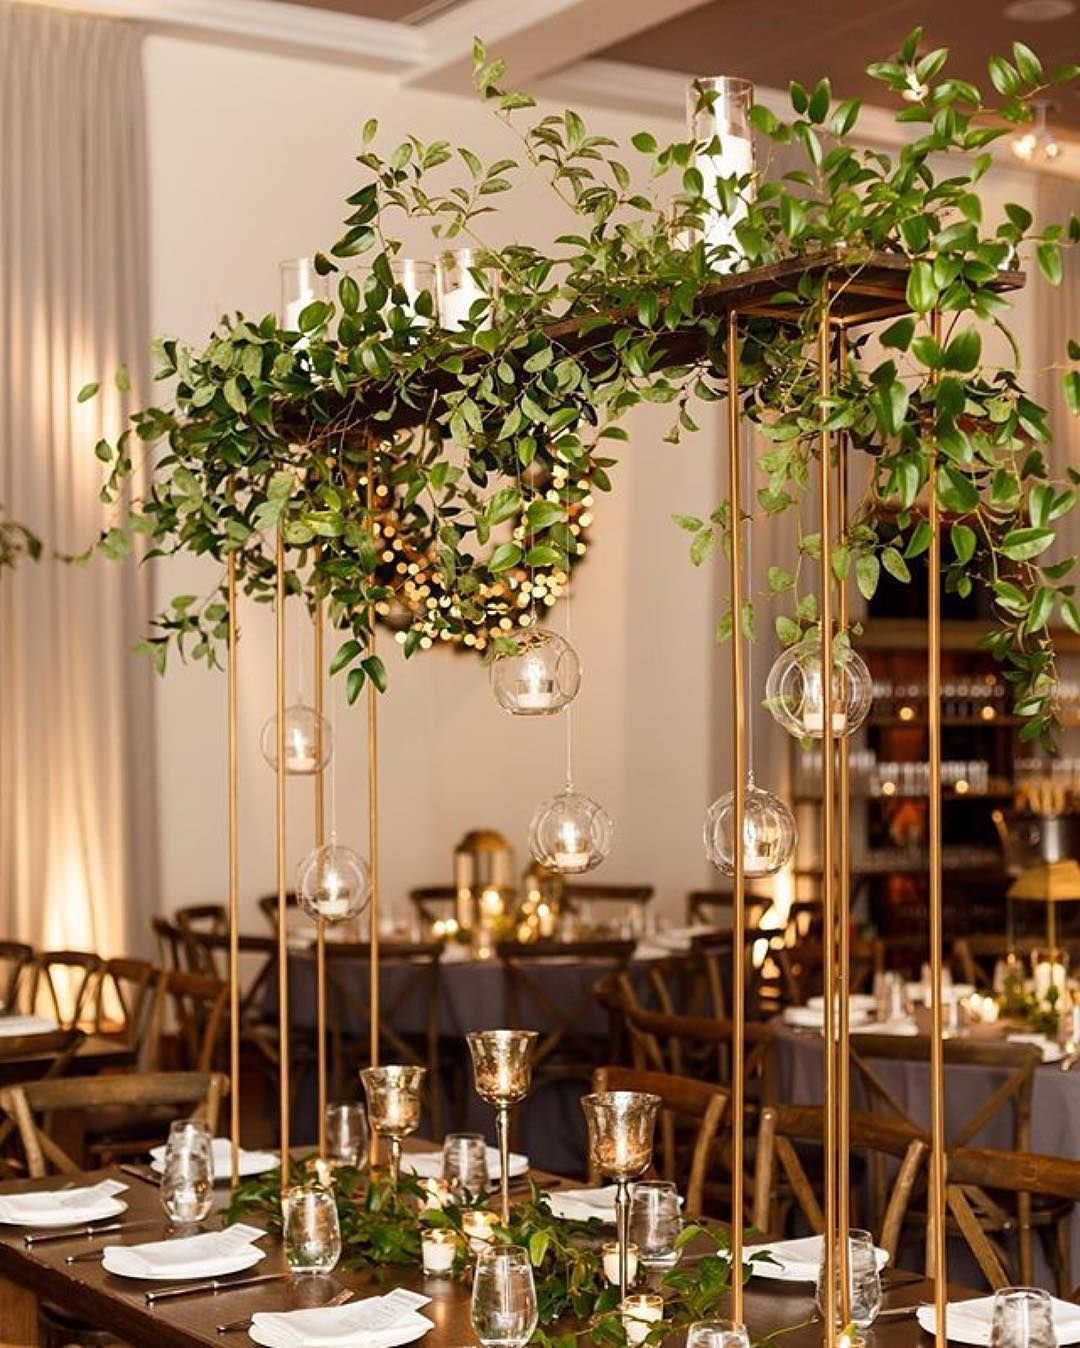 Hmr designs greenery virginia and centerpieces for Modern table centerpieces